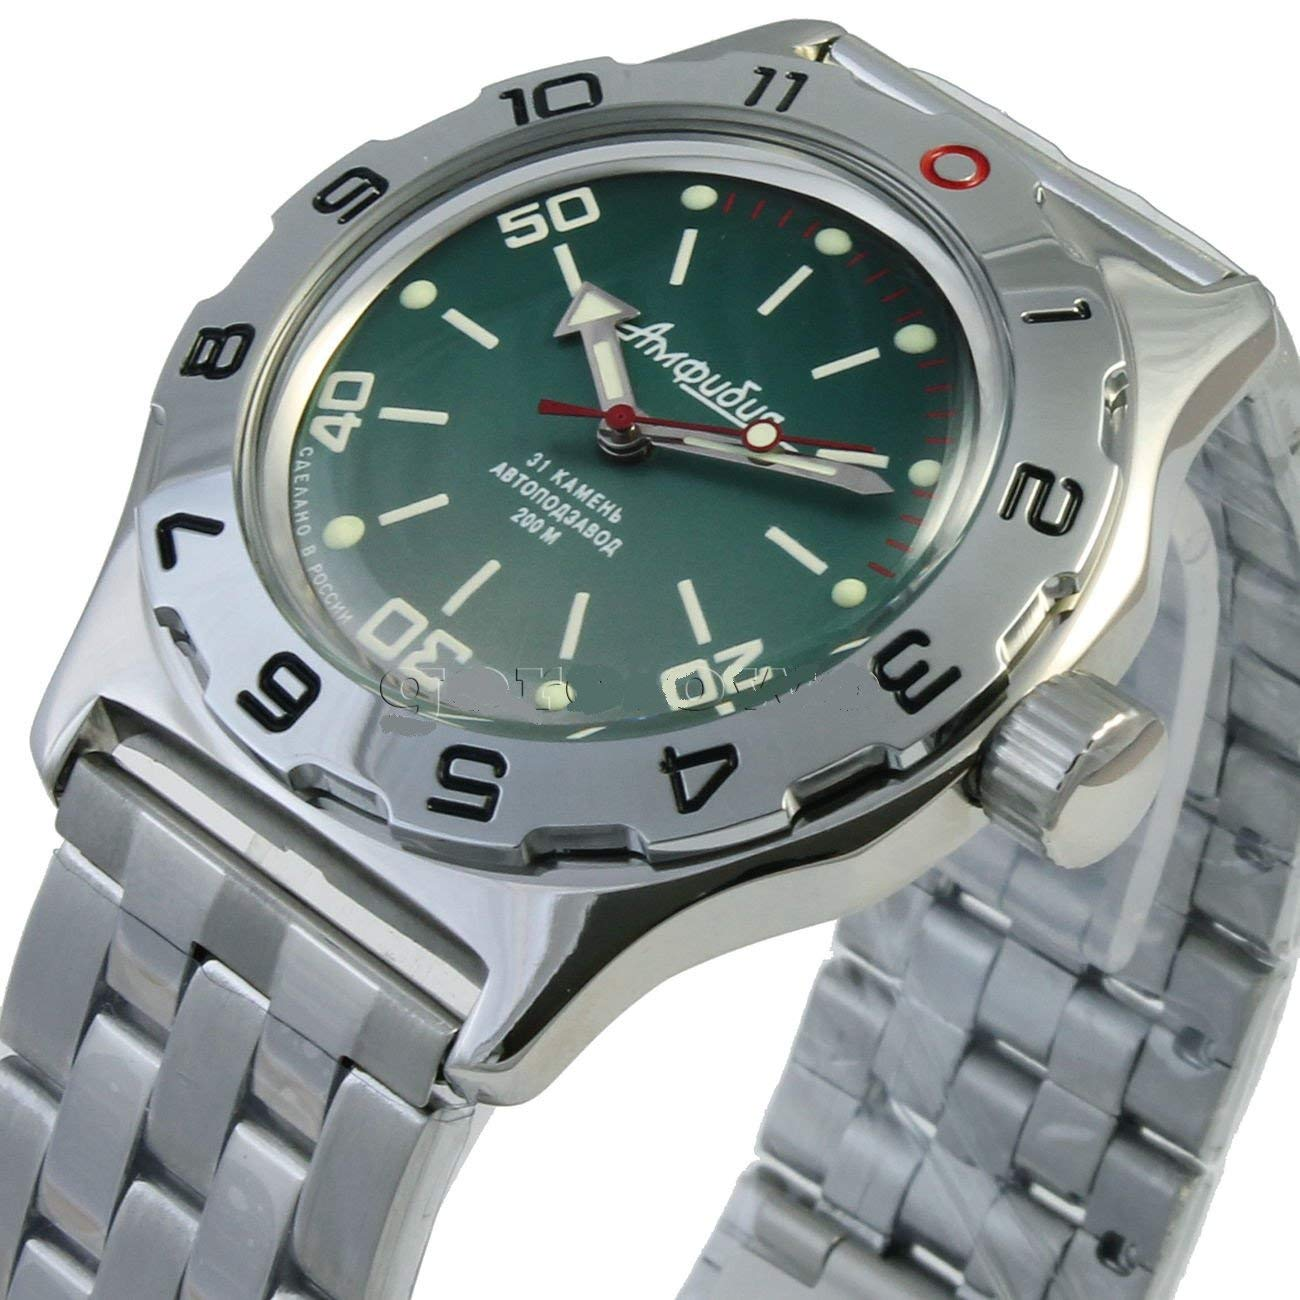 Amazon.com: Vostok New Amphibian 100821 Russian Automatic Divers Wrist Watch 200m Auto Green: Vostok: Watches